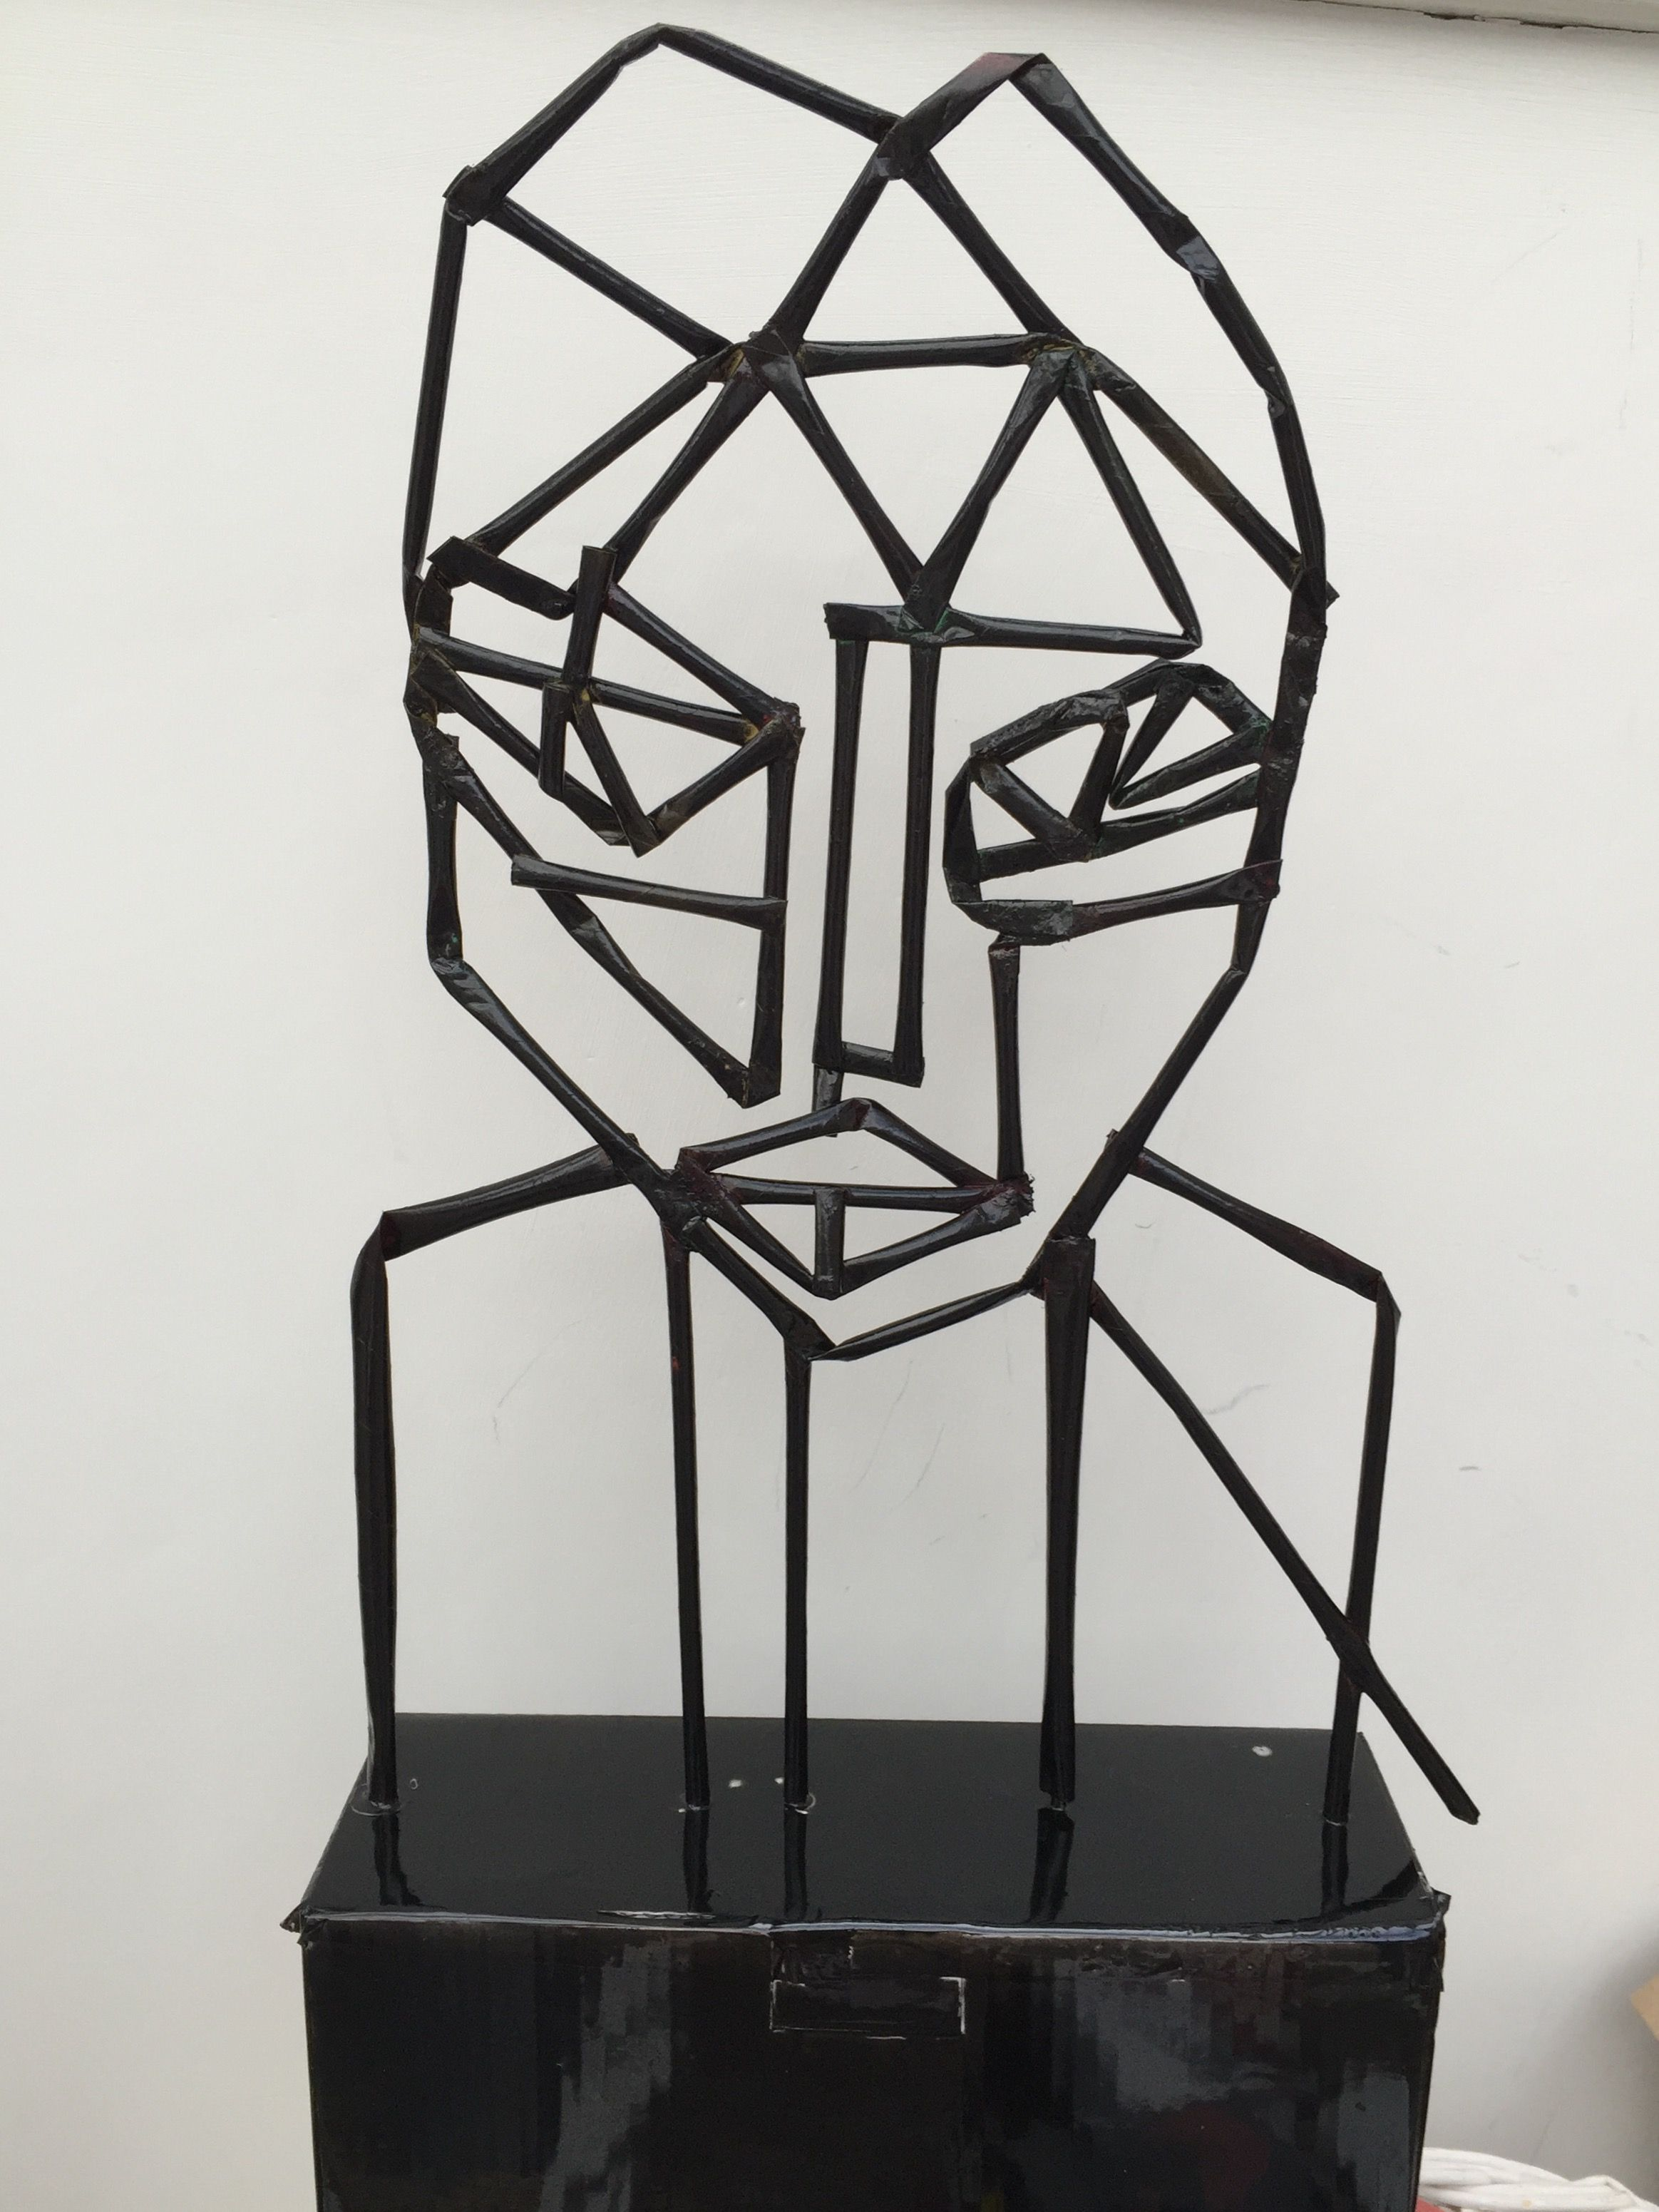 Naum gabo inspired 39 head 39 made from drinking straws for Plastic straw art